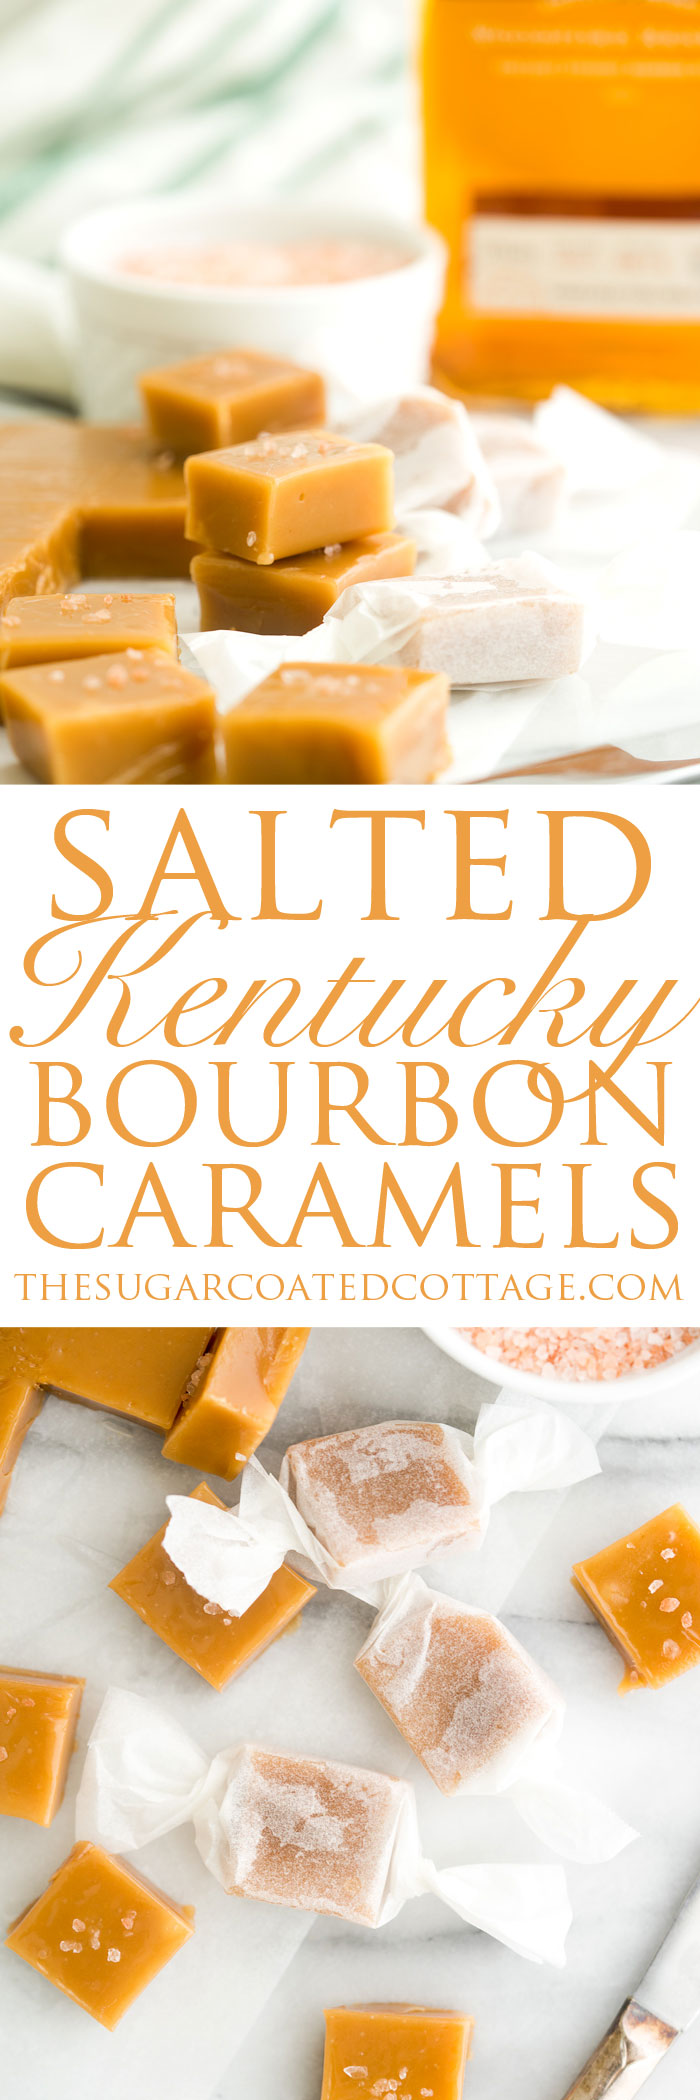 Salted Kentucky Bourbon Caramels. Sticky, gooey, bourbon enhanced caramel candy. An addicting candy classic. | thesugarcoatedcottage.com #caramel #candy